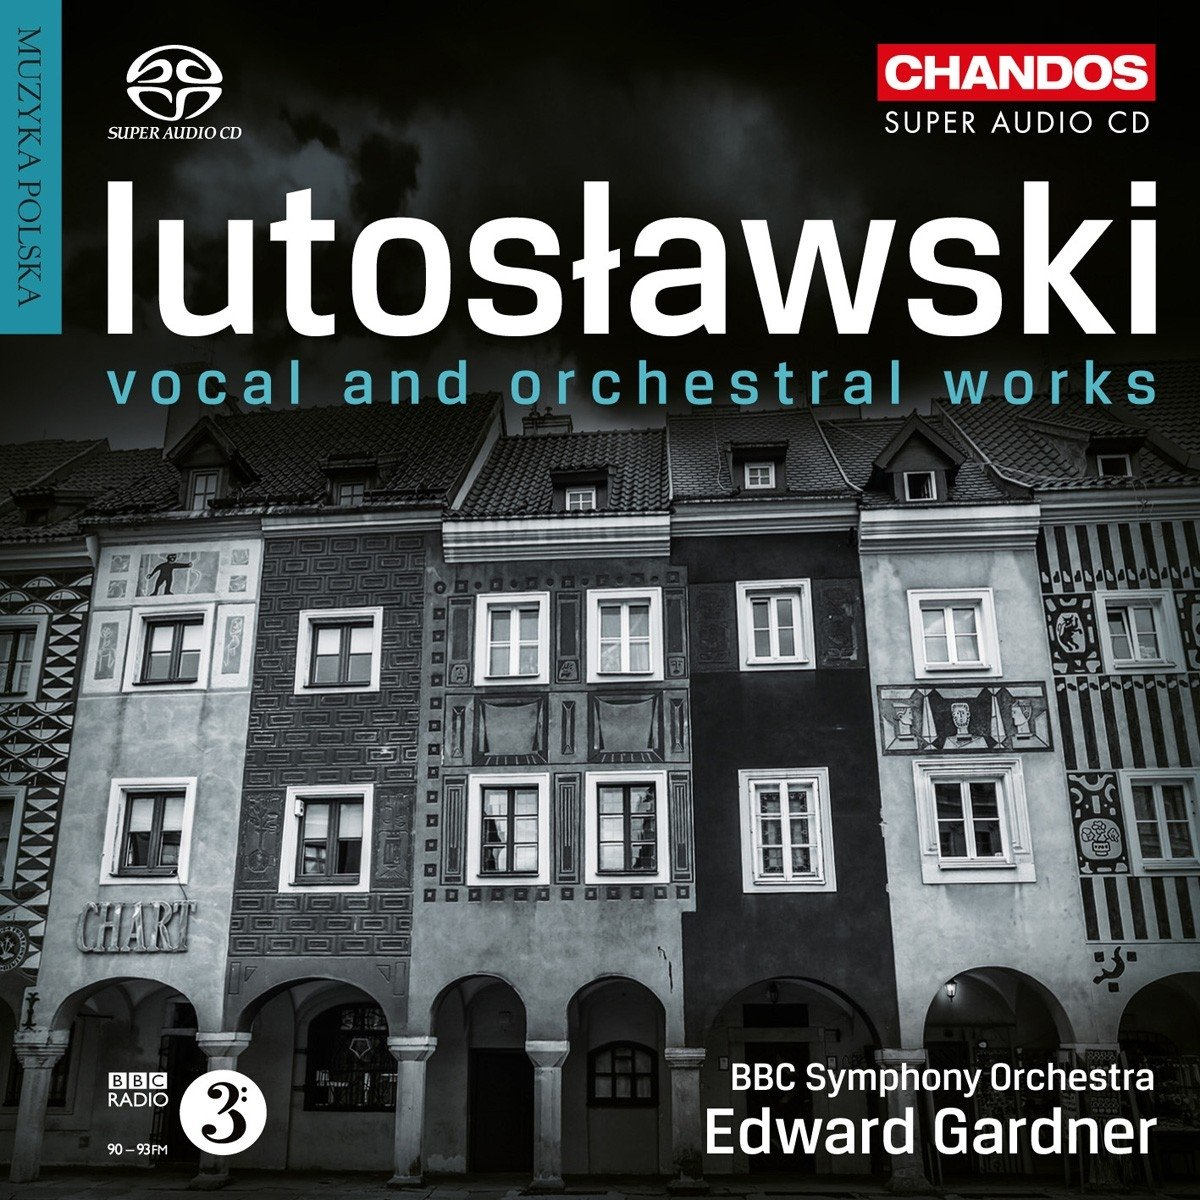 Lutoslawski: Orchestral & Vocal Works by Chandos